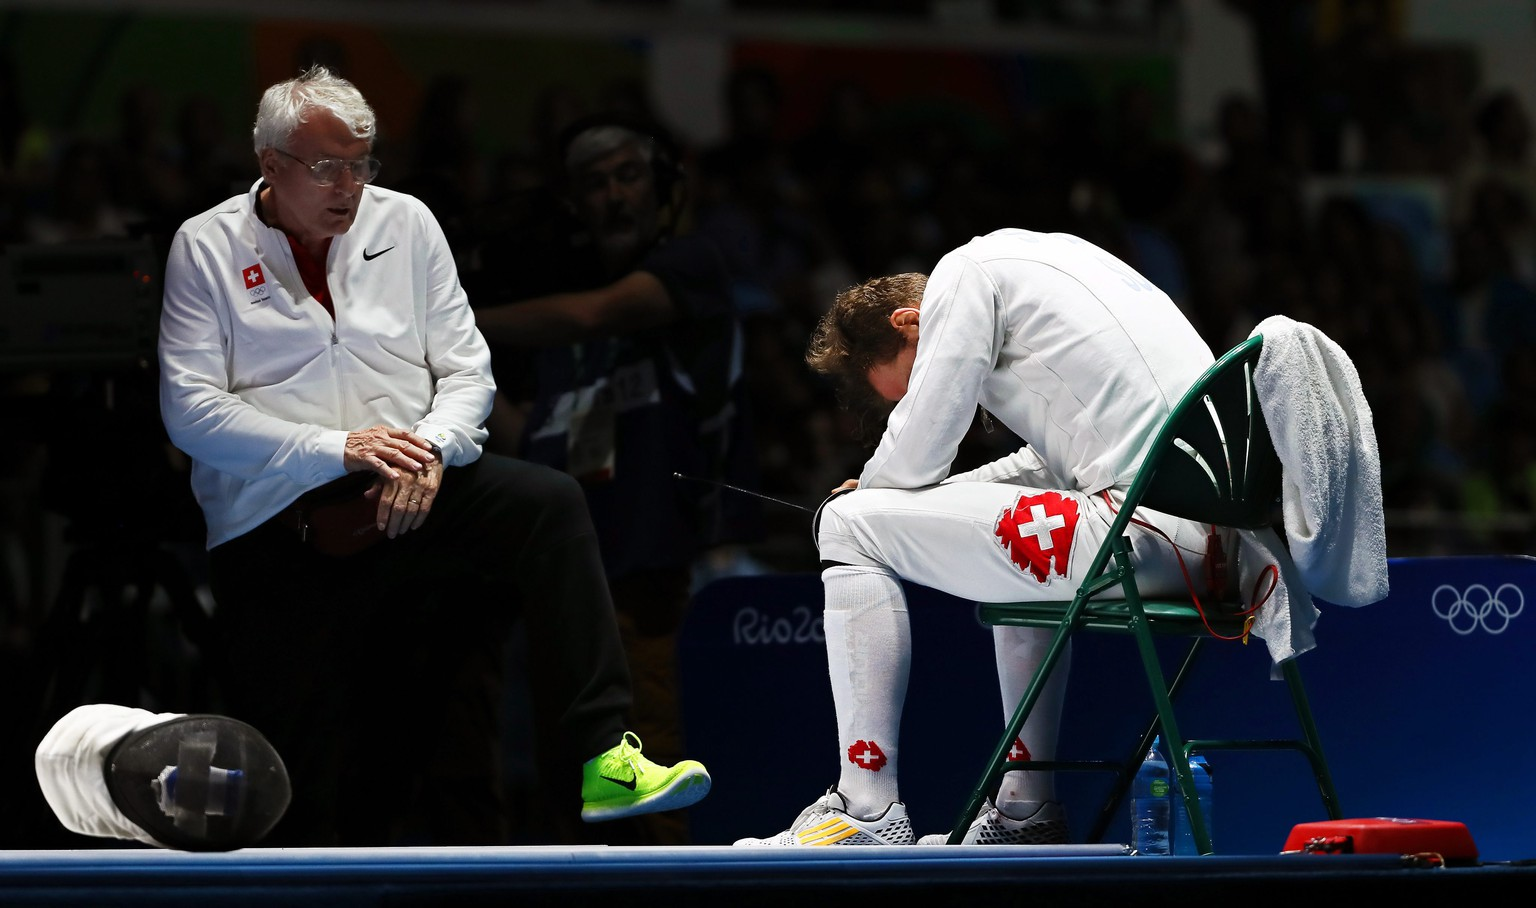 epa05468956 Benjamin Steffen (R) of Switzerland reacts after losing to Gauthier Grumier (L) of France in the men's Epee individual bronze medal bout of the Rio 2016 Olympic Games Fencing events at the Carioca Arena 3 in the Olympic Park in Rio de Janeiro, Brazil, 09 August 2016  EPA/JOSE MENDEZ